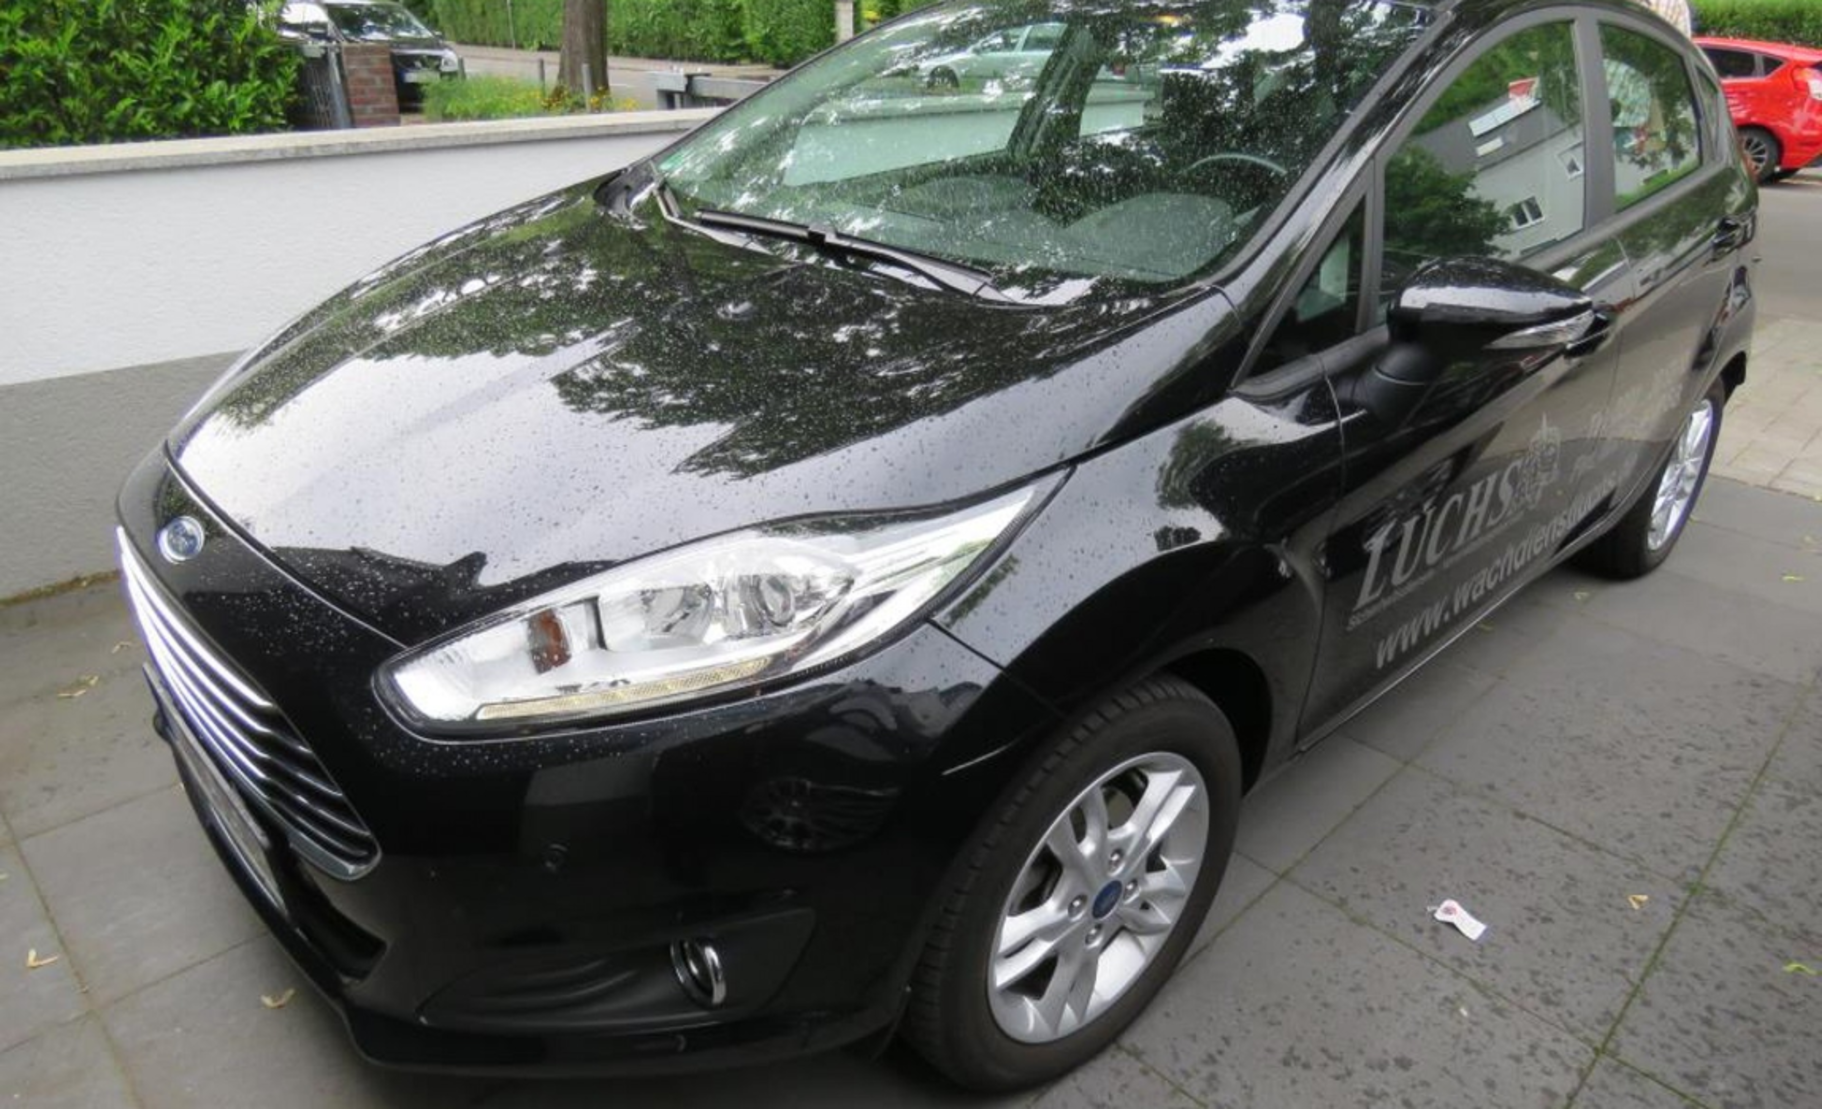 Ford Fiesta 1.0 SYNC Edition (574951) detail1